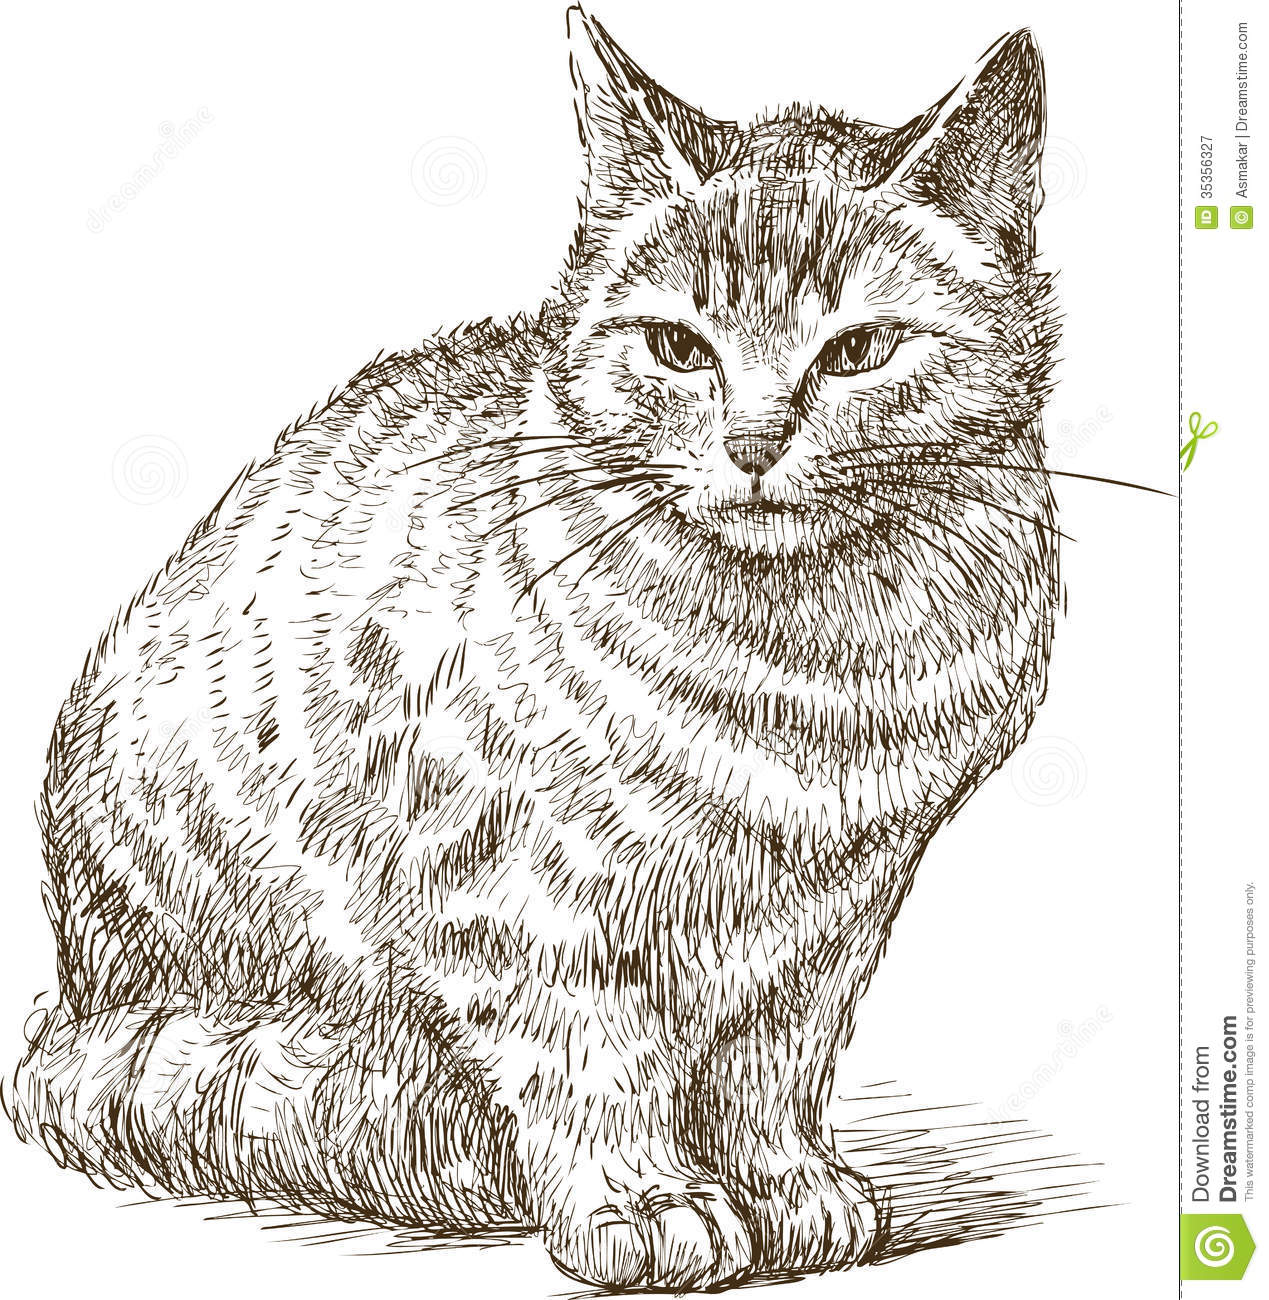 how to draw a cat side on in sketches